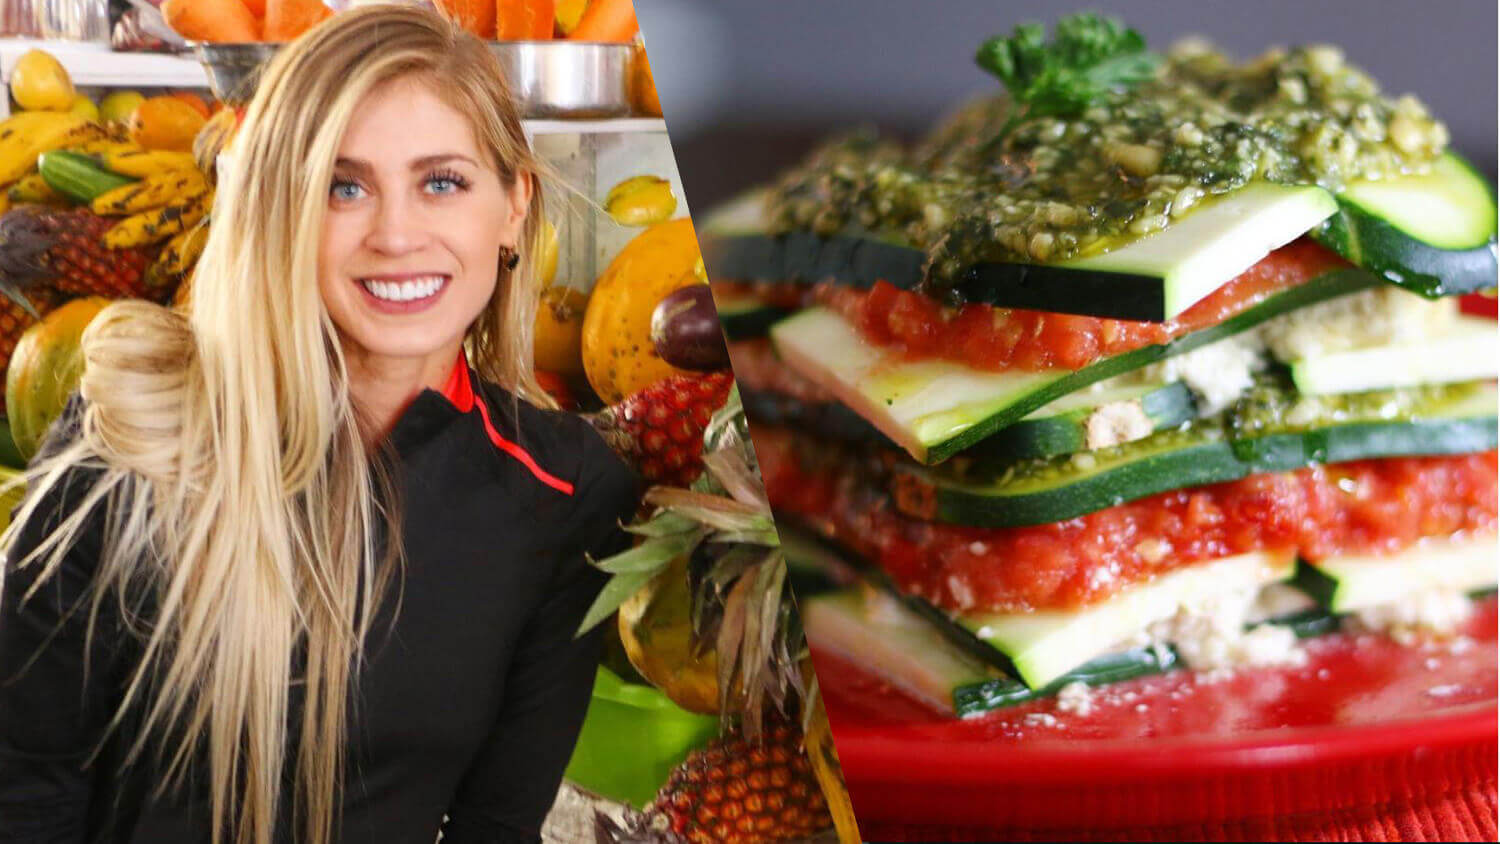 Plant-Based Chef to Open World's First 'I Like It RAW' Vegan Fast Food Restaurant